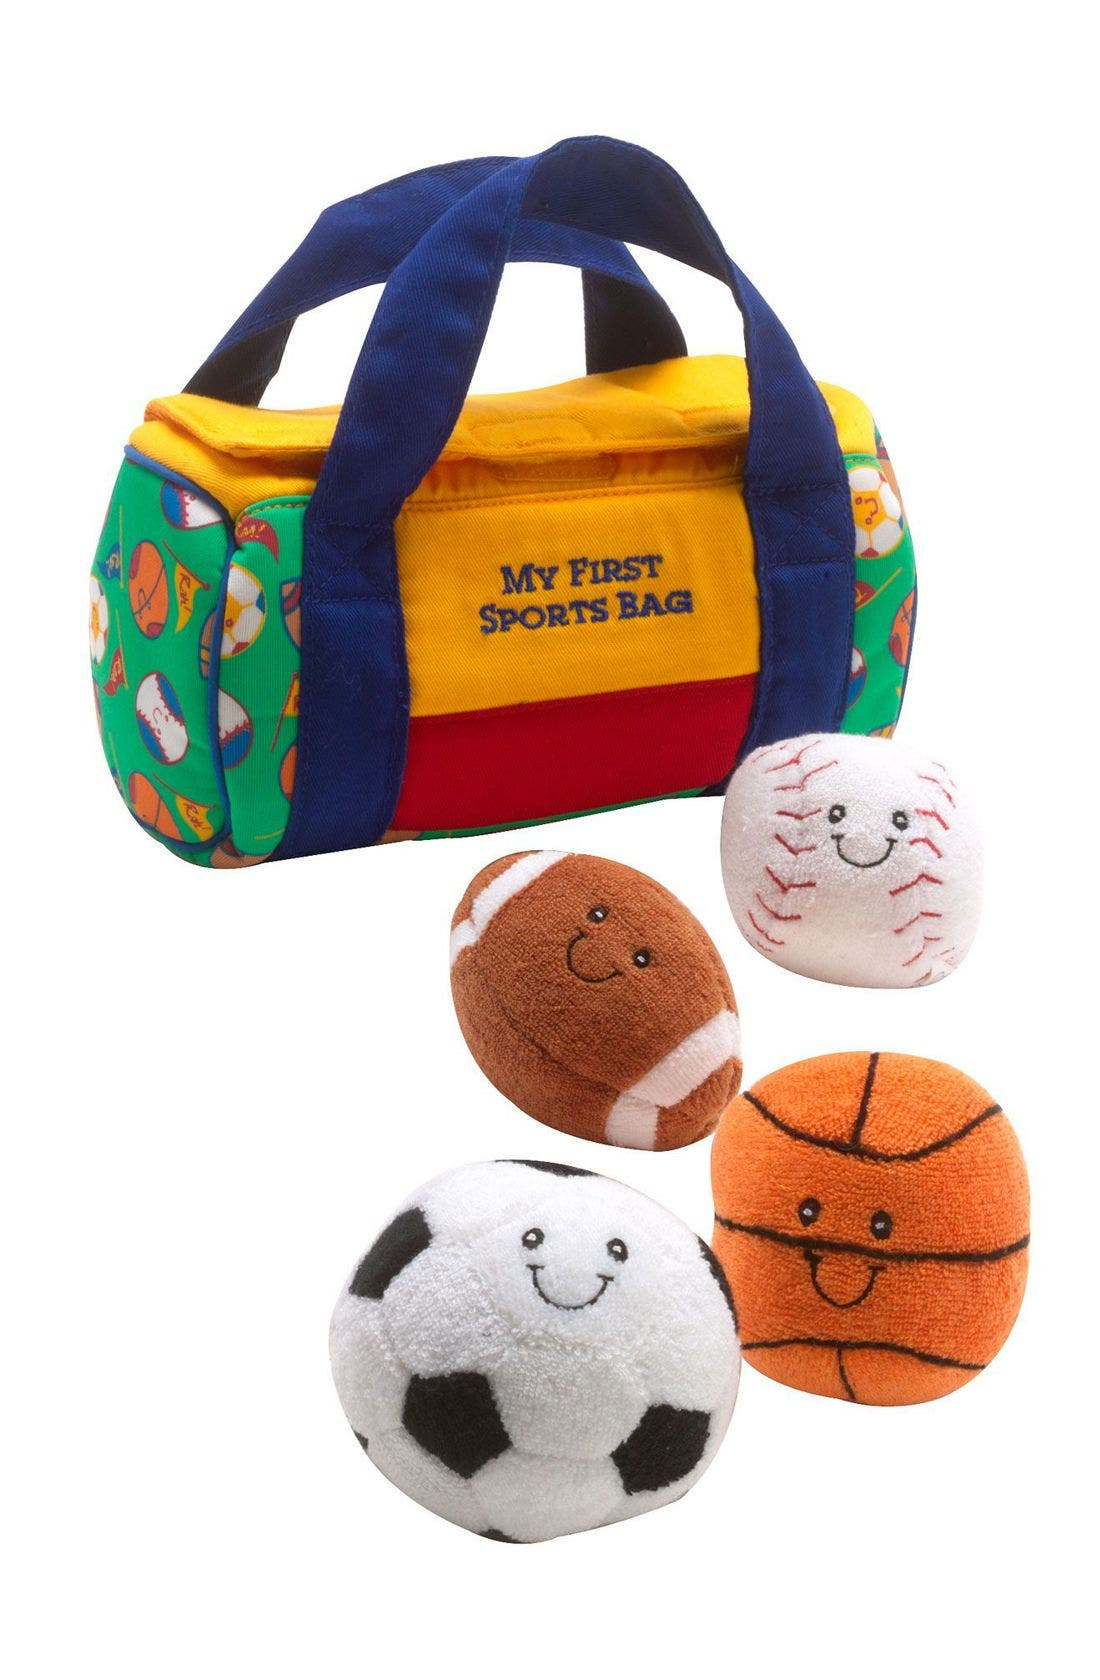 Main Image - Gund 'My First Sports Bag' Play Set